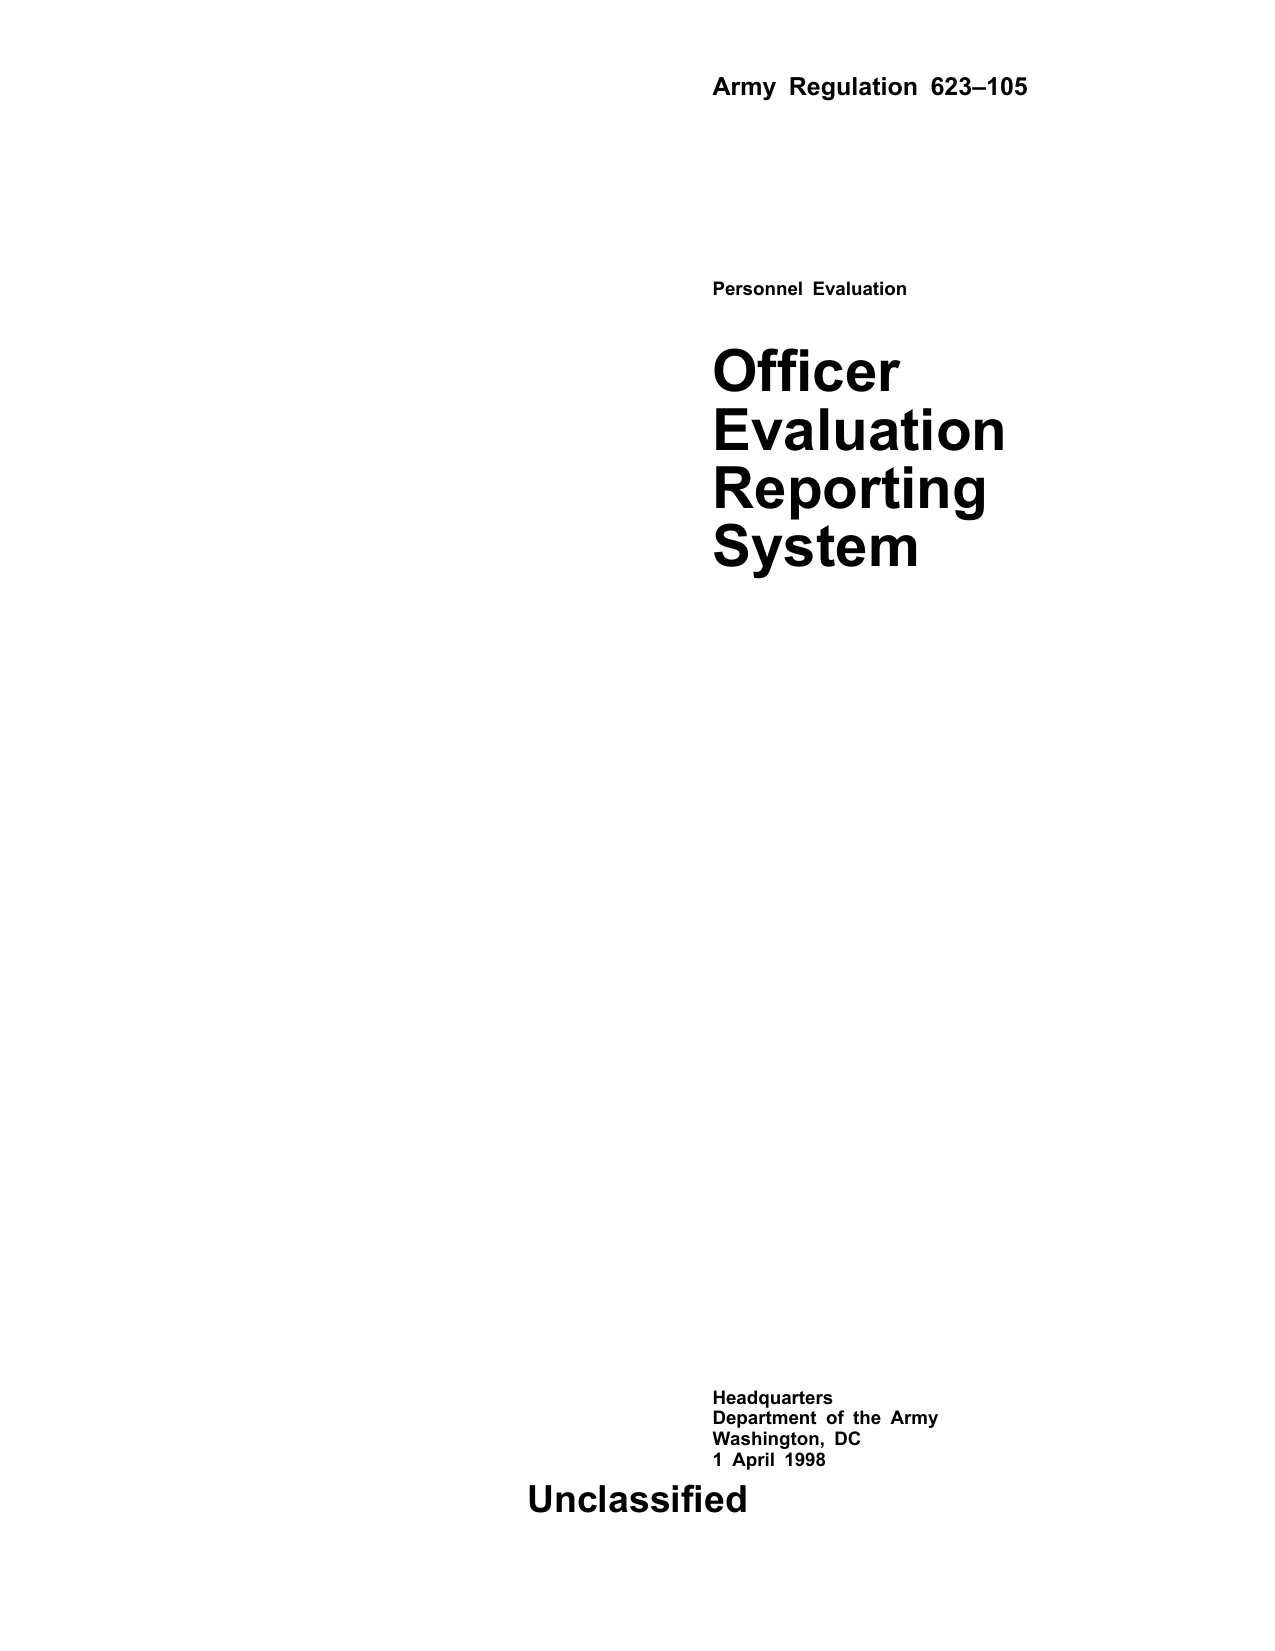 Officer Evaluation Reporting System